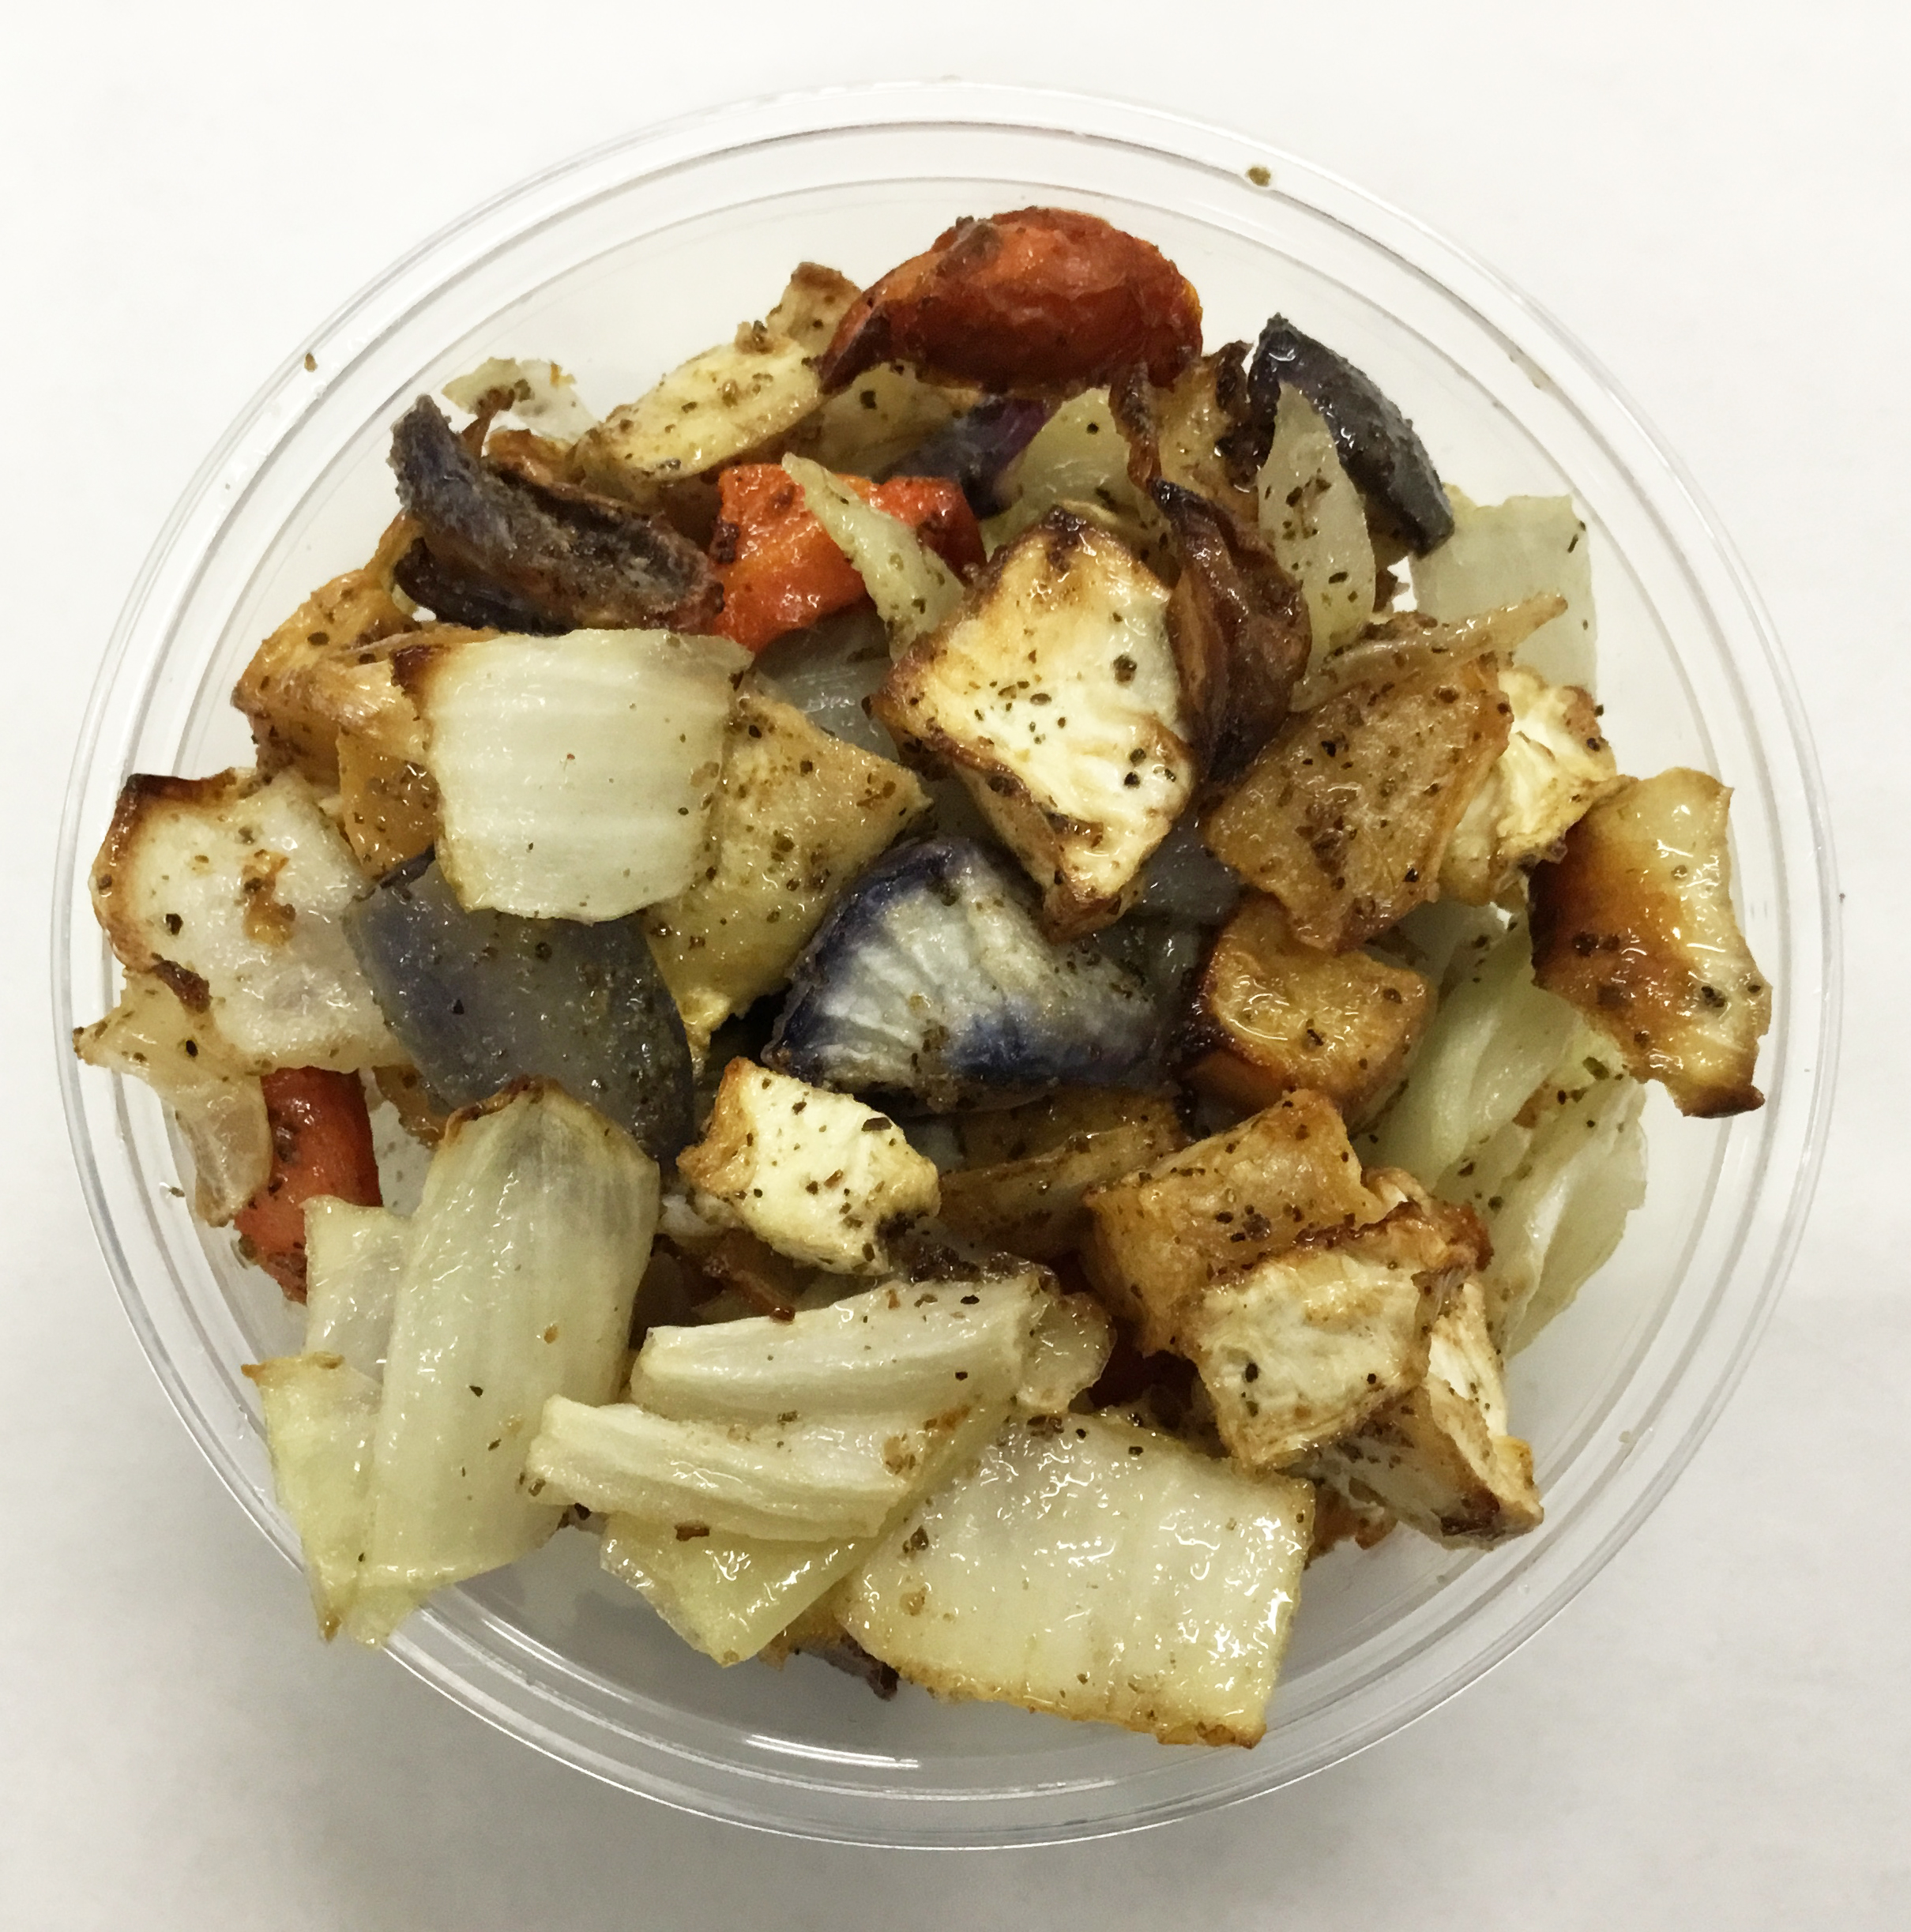 Roasted root vegetables of rutabaga, carrot and celery root.